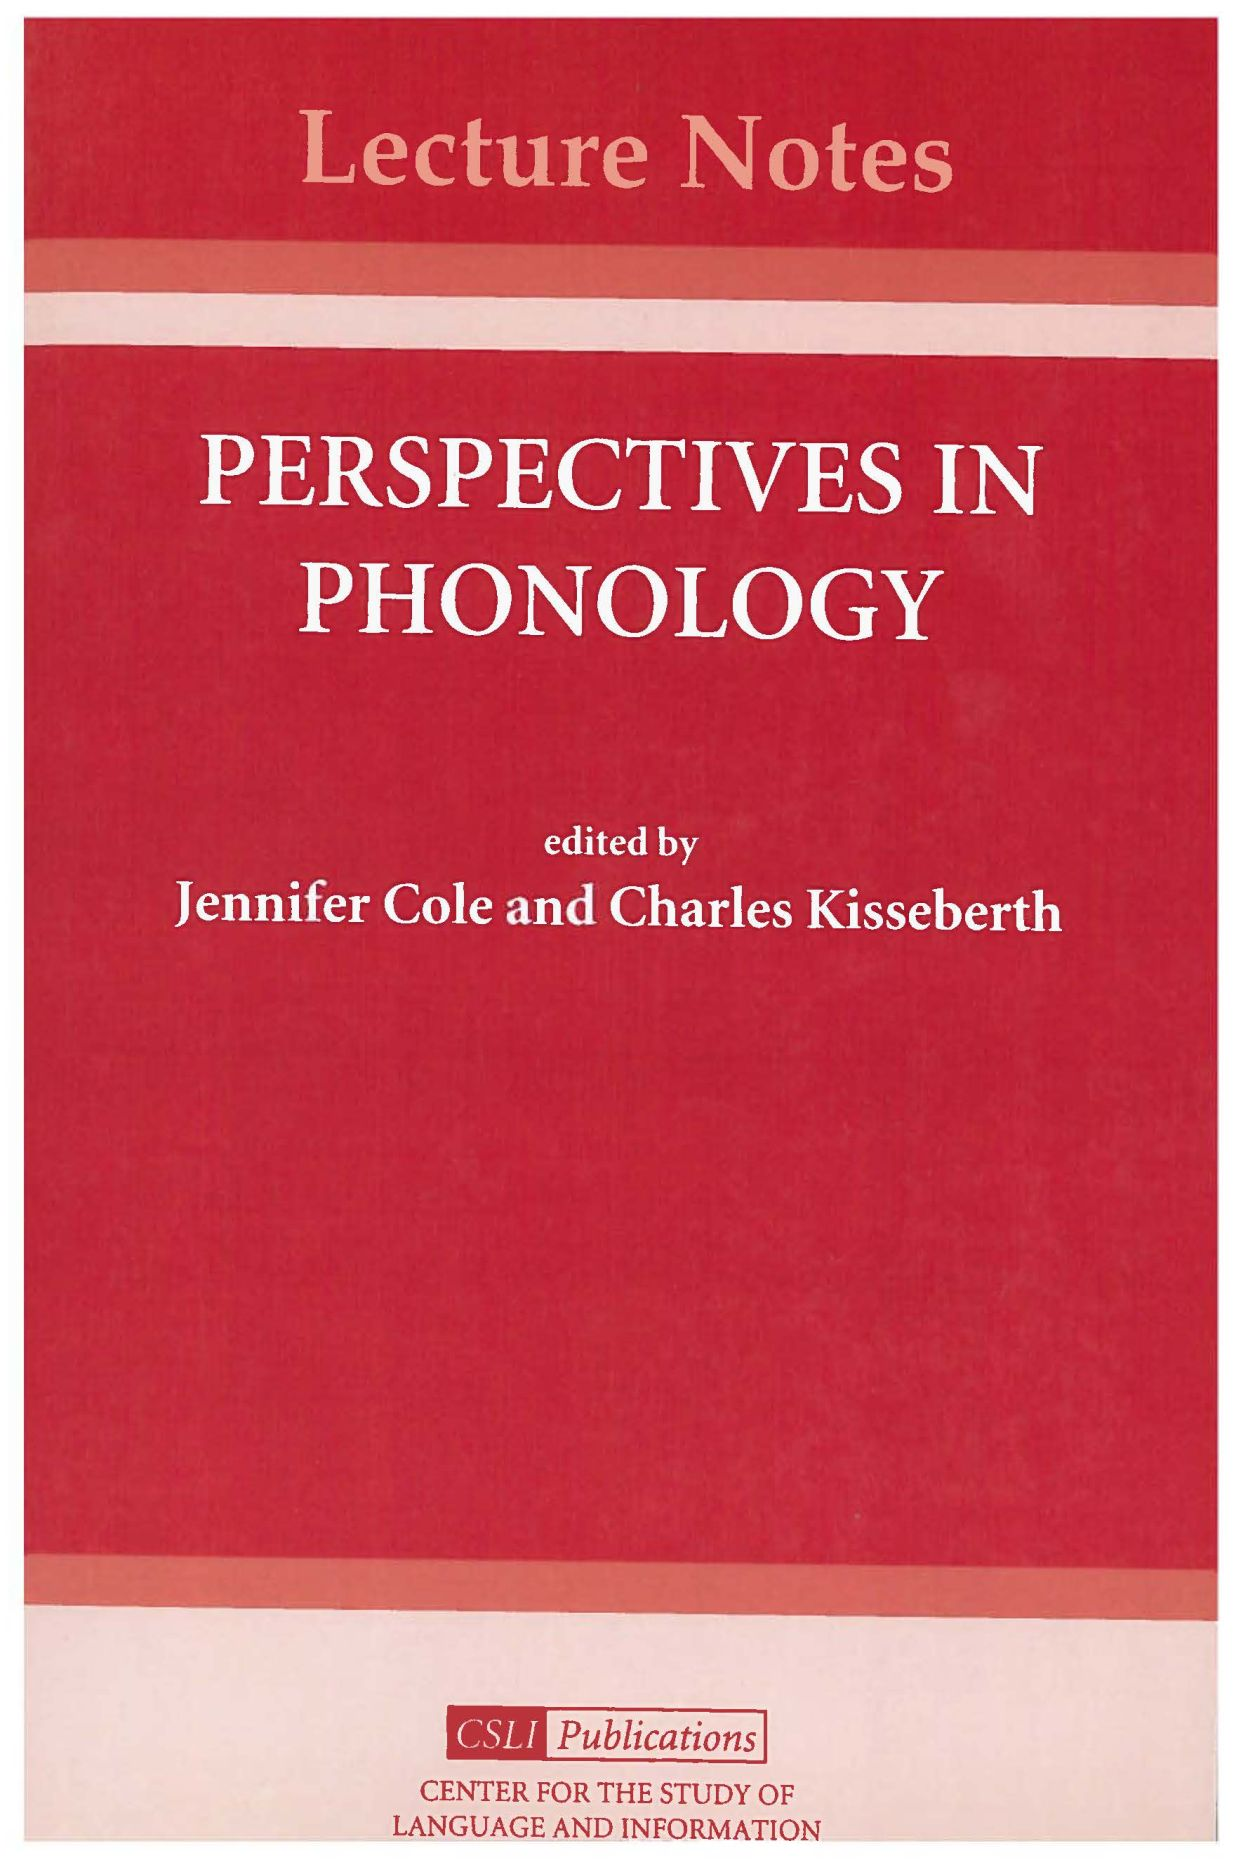 Perspectives in Phonology